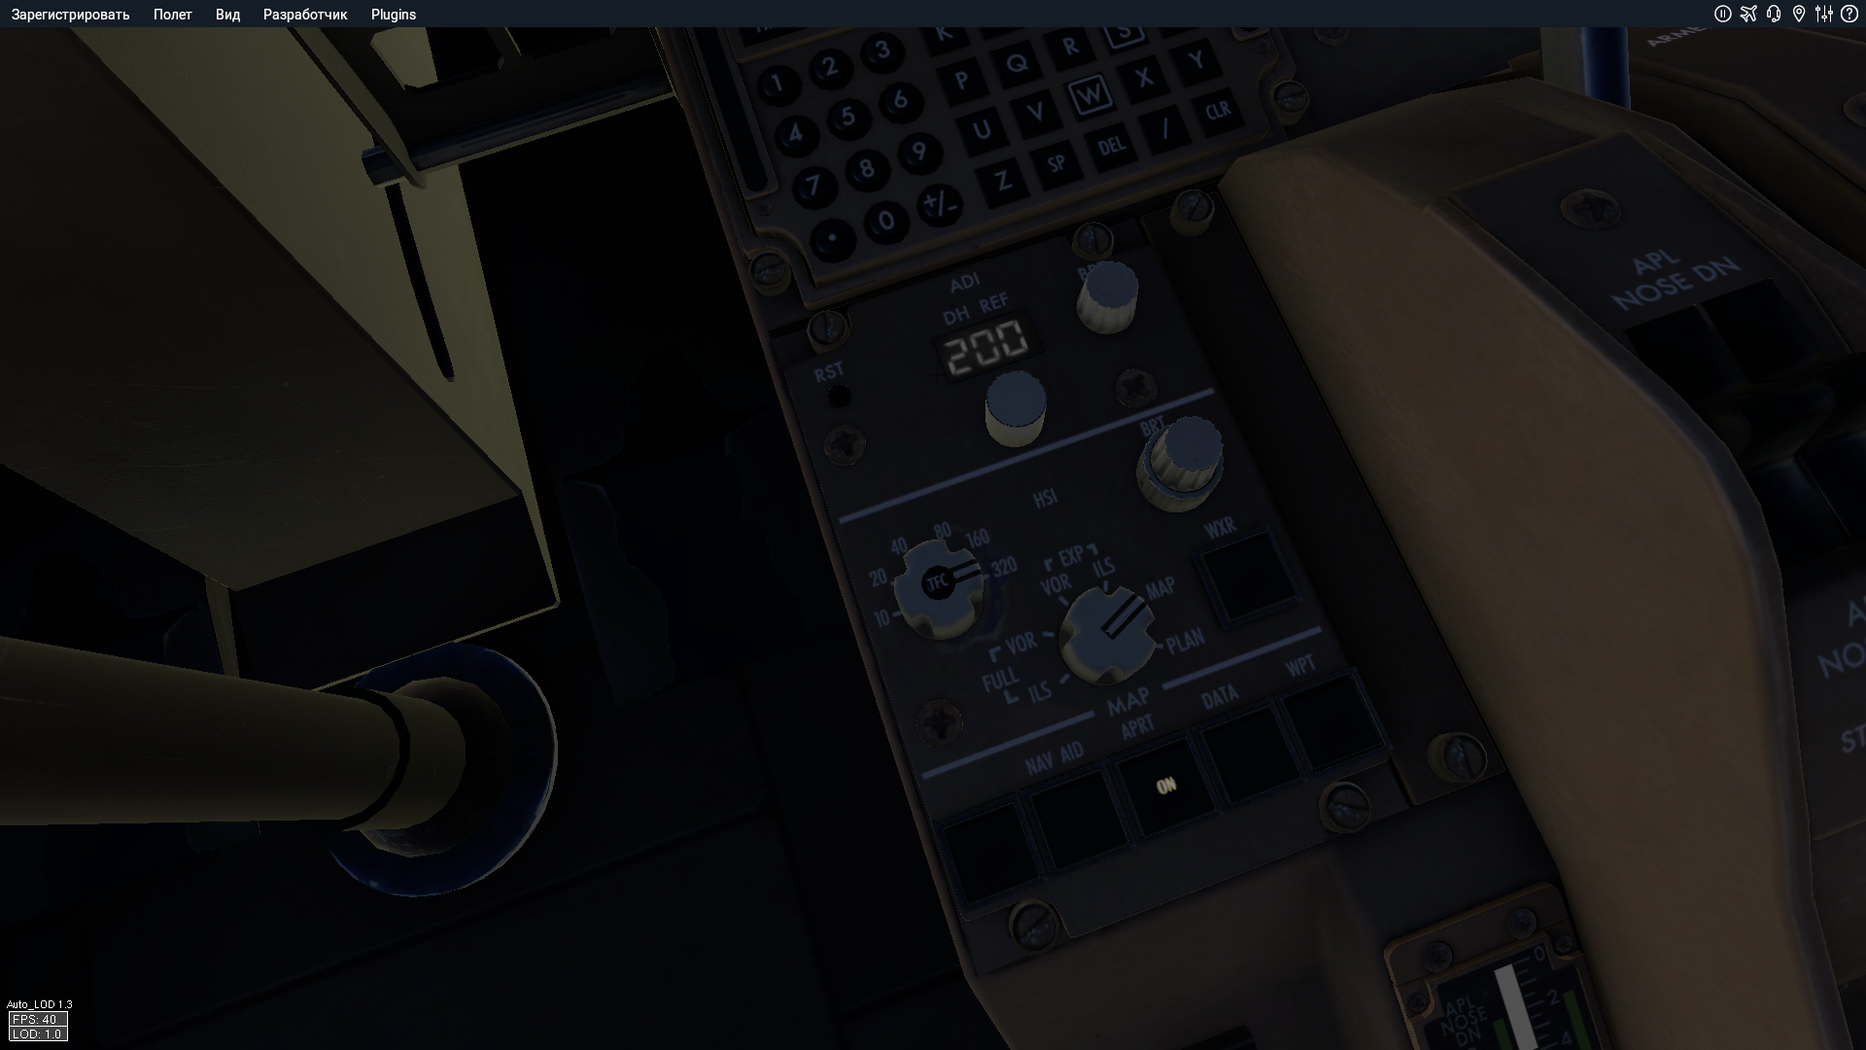 757-200_xp11_2.png